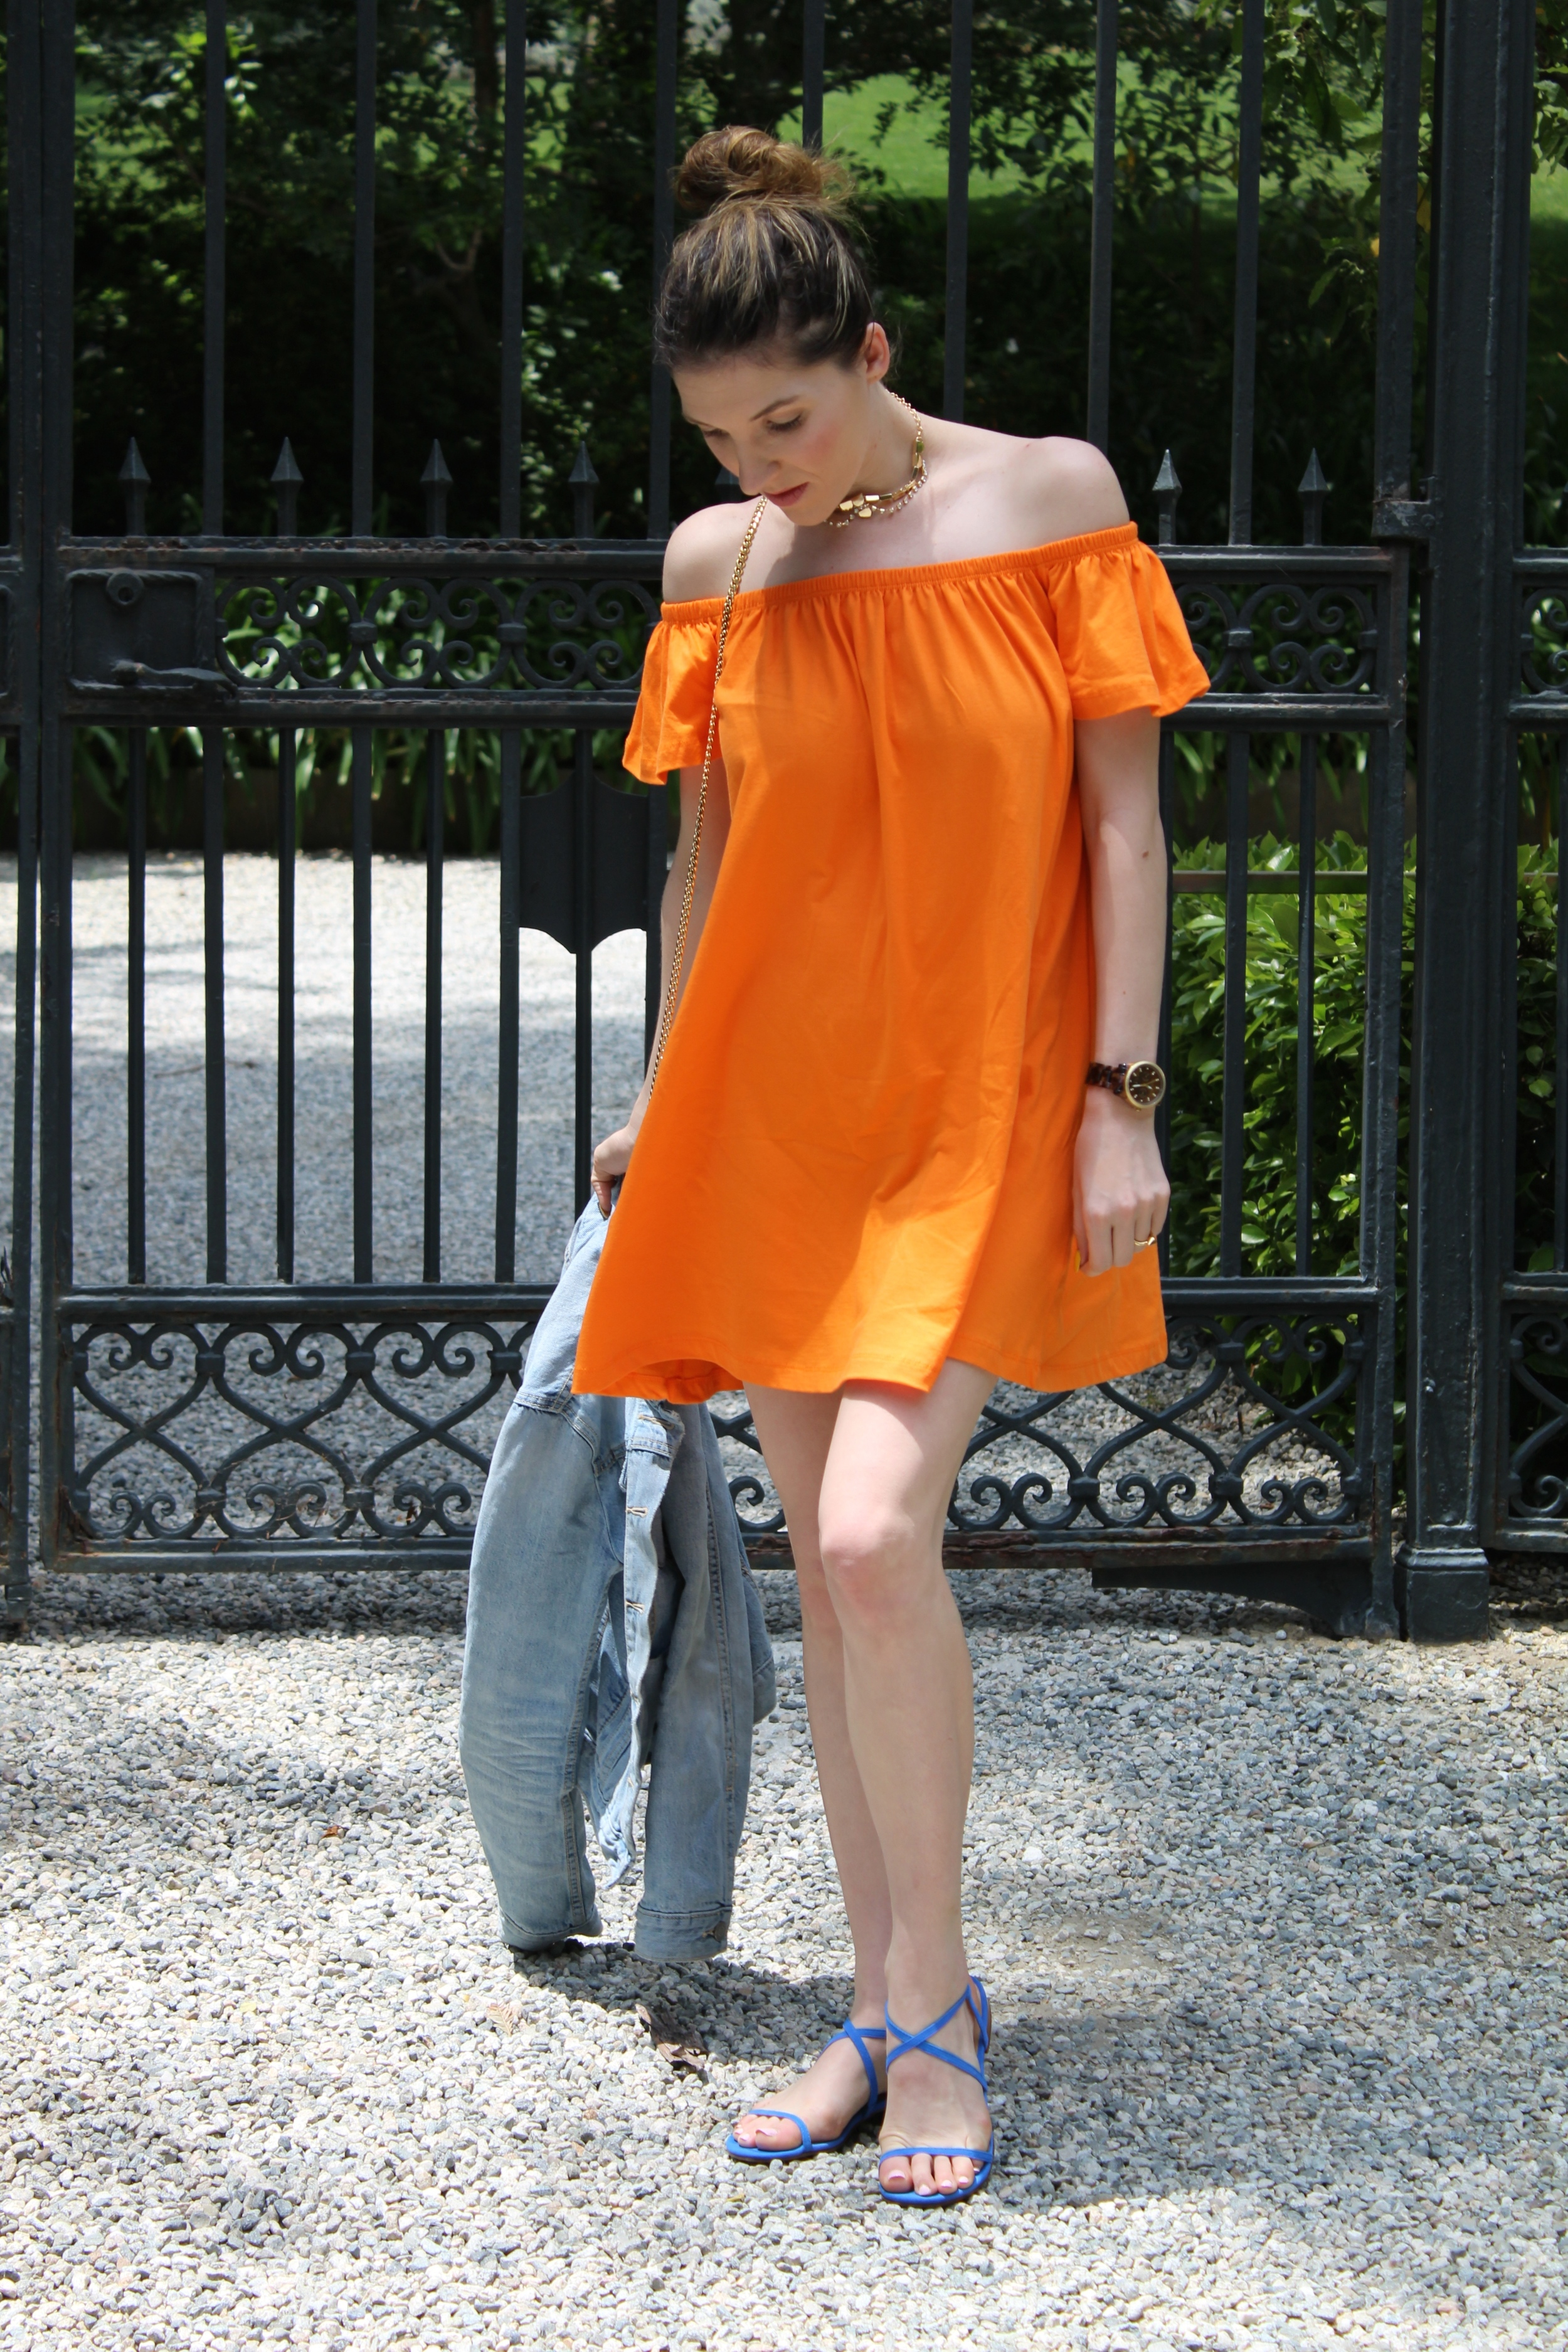 Everyone should know by now how much I love color! Pairing this bright orange dress with these bright blue shoes was right up my alley. I love the color combo and I think it sums up my style perfectly.